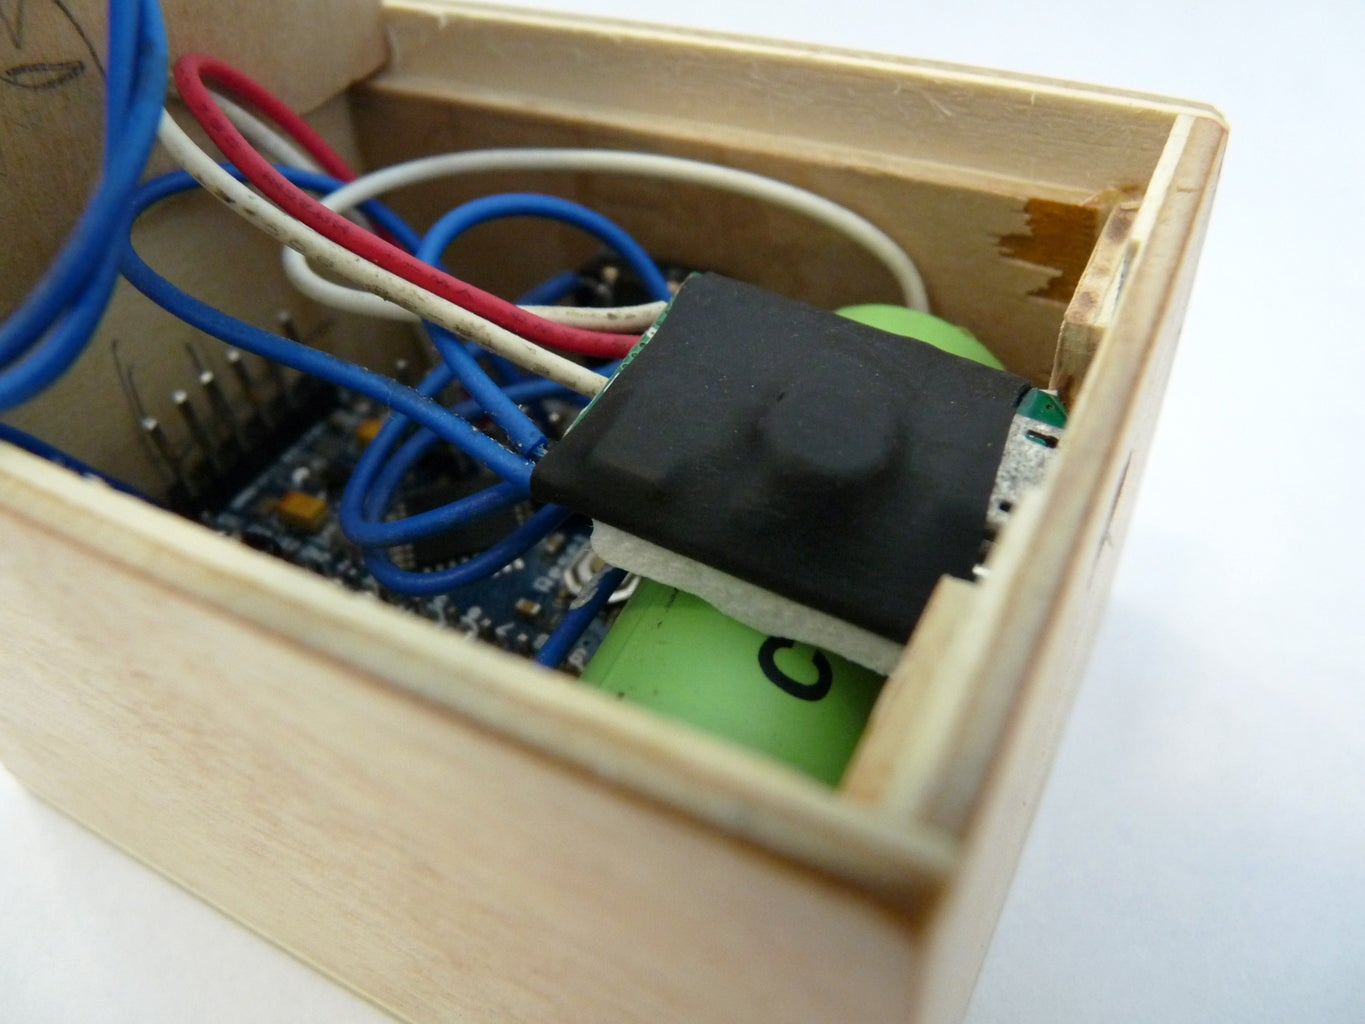 Fit the Components in the Enclosure